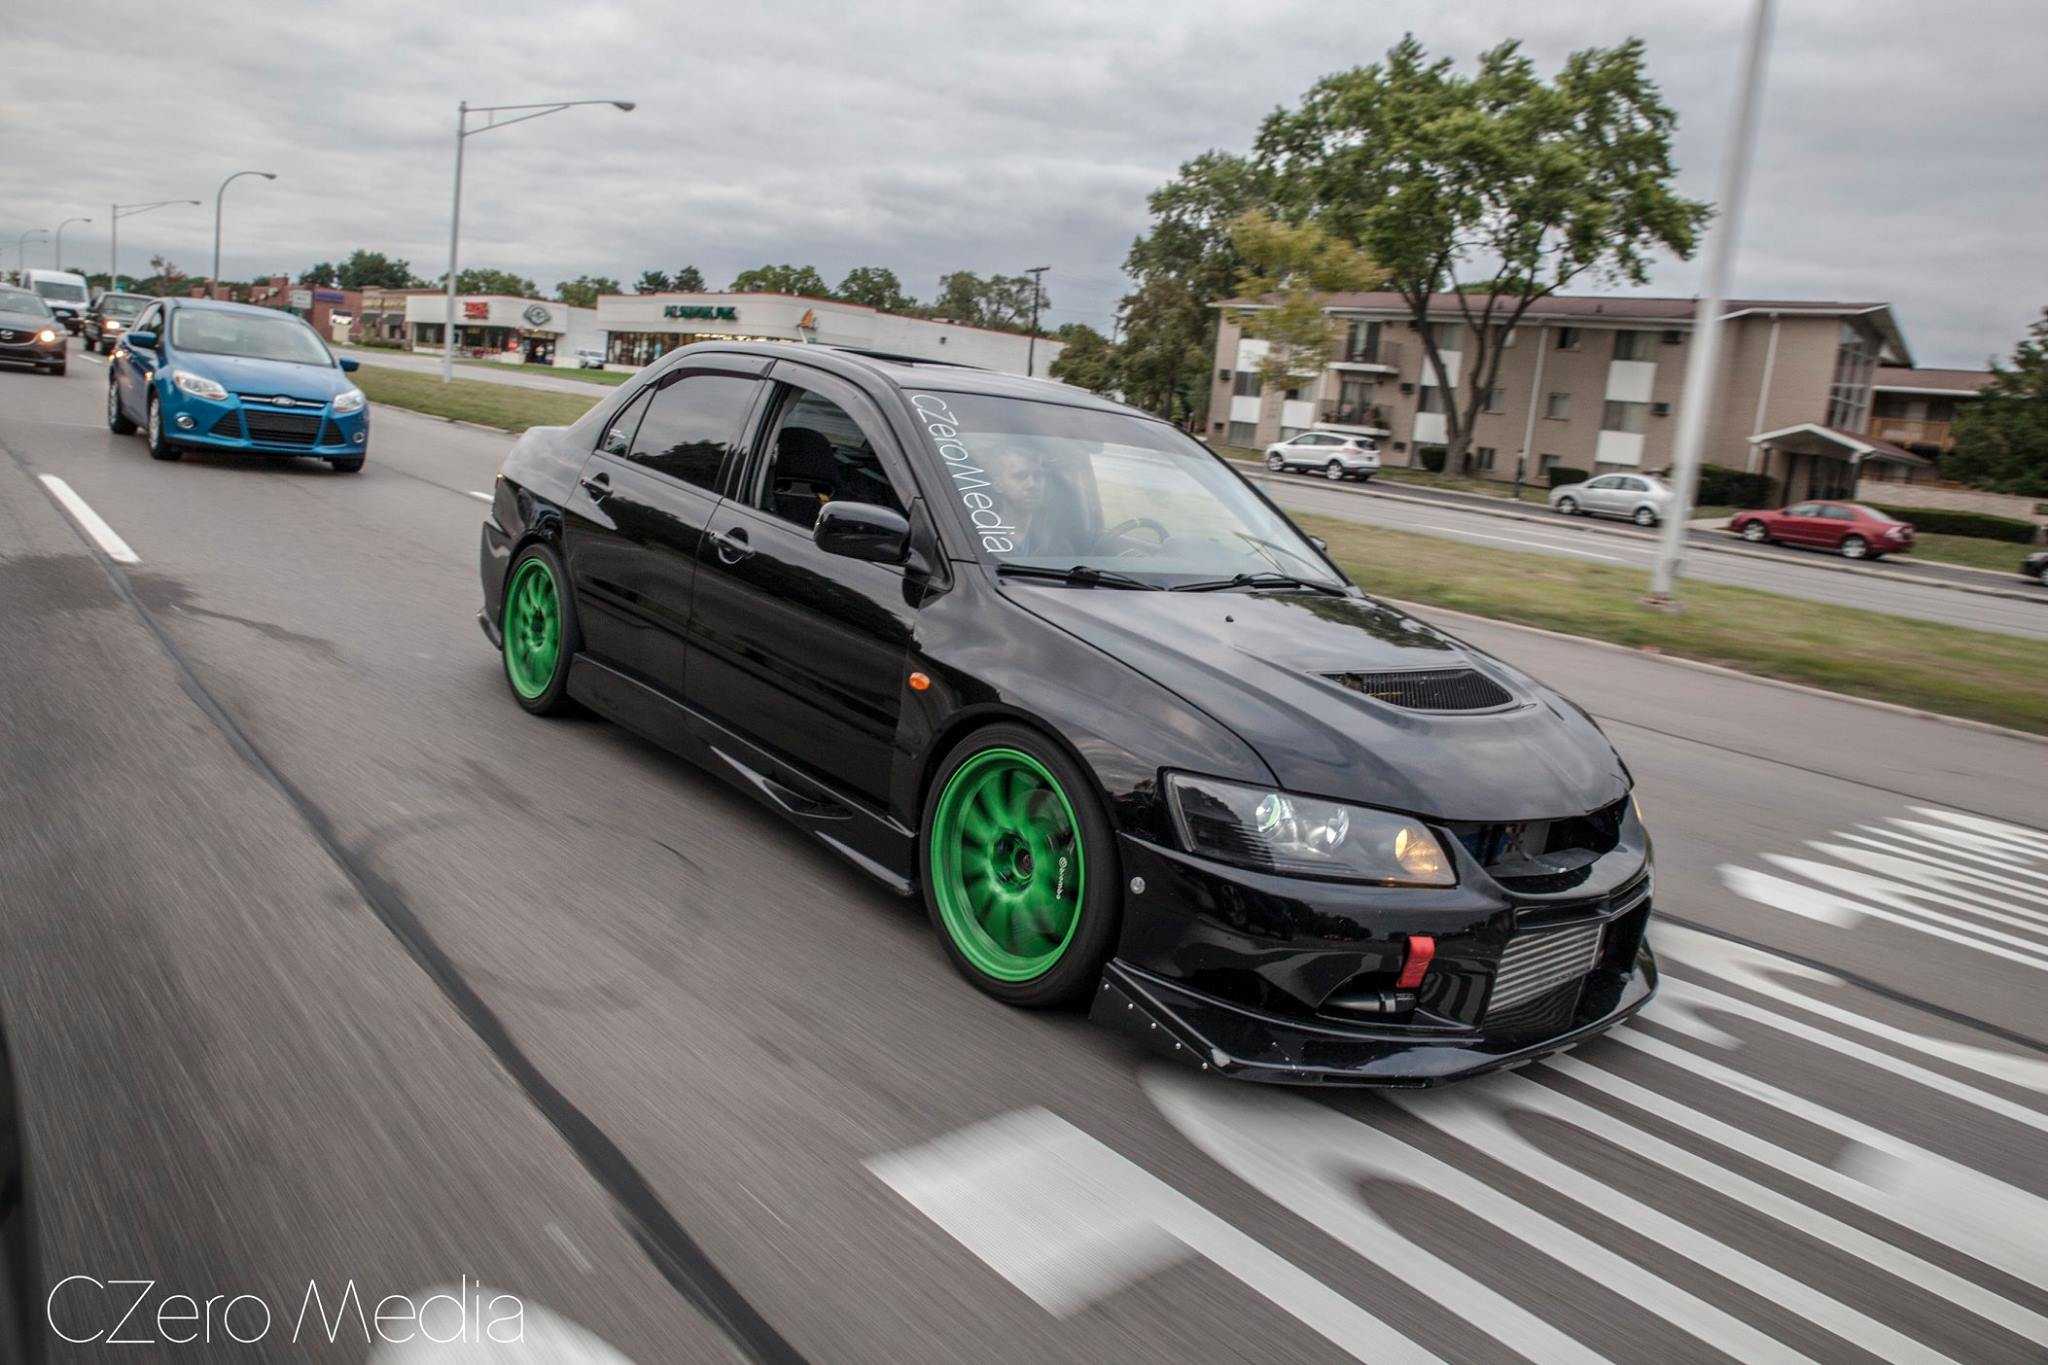 CZeroMedia – Discounted Evo Parts and Merchandise